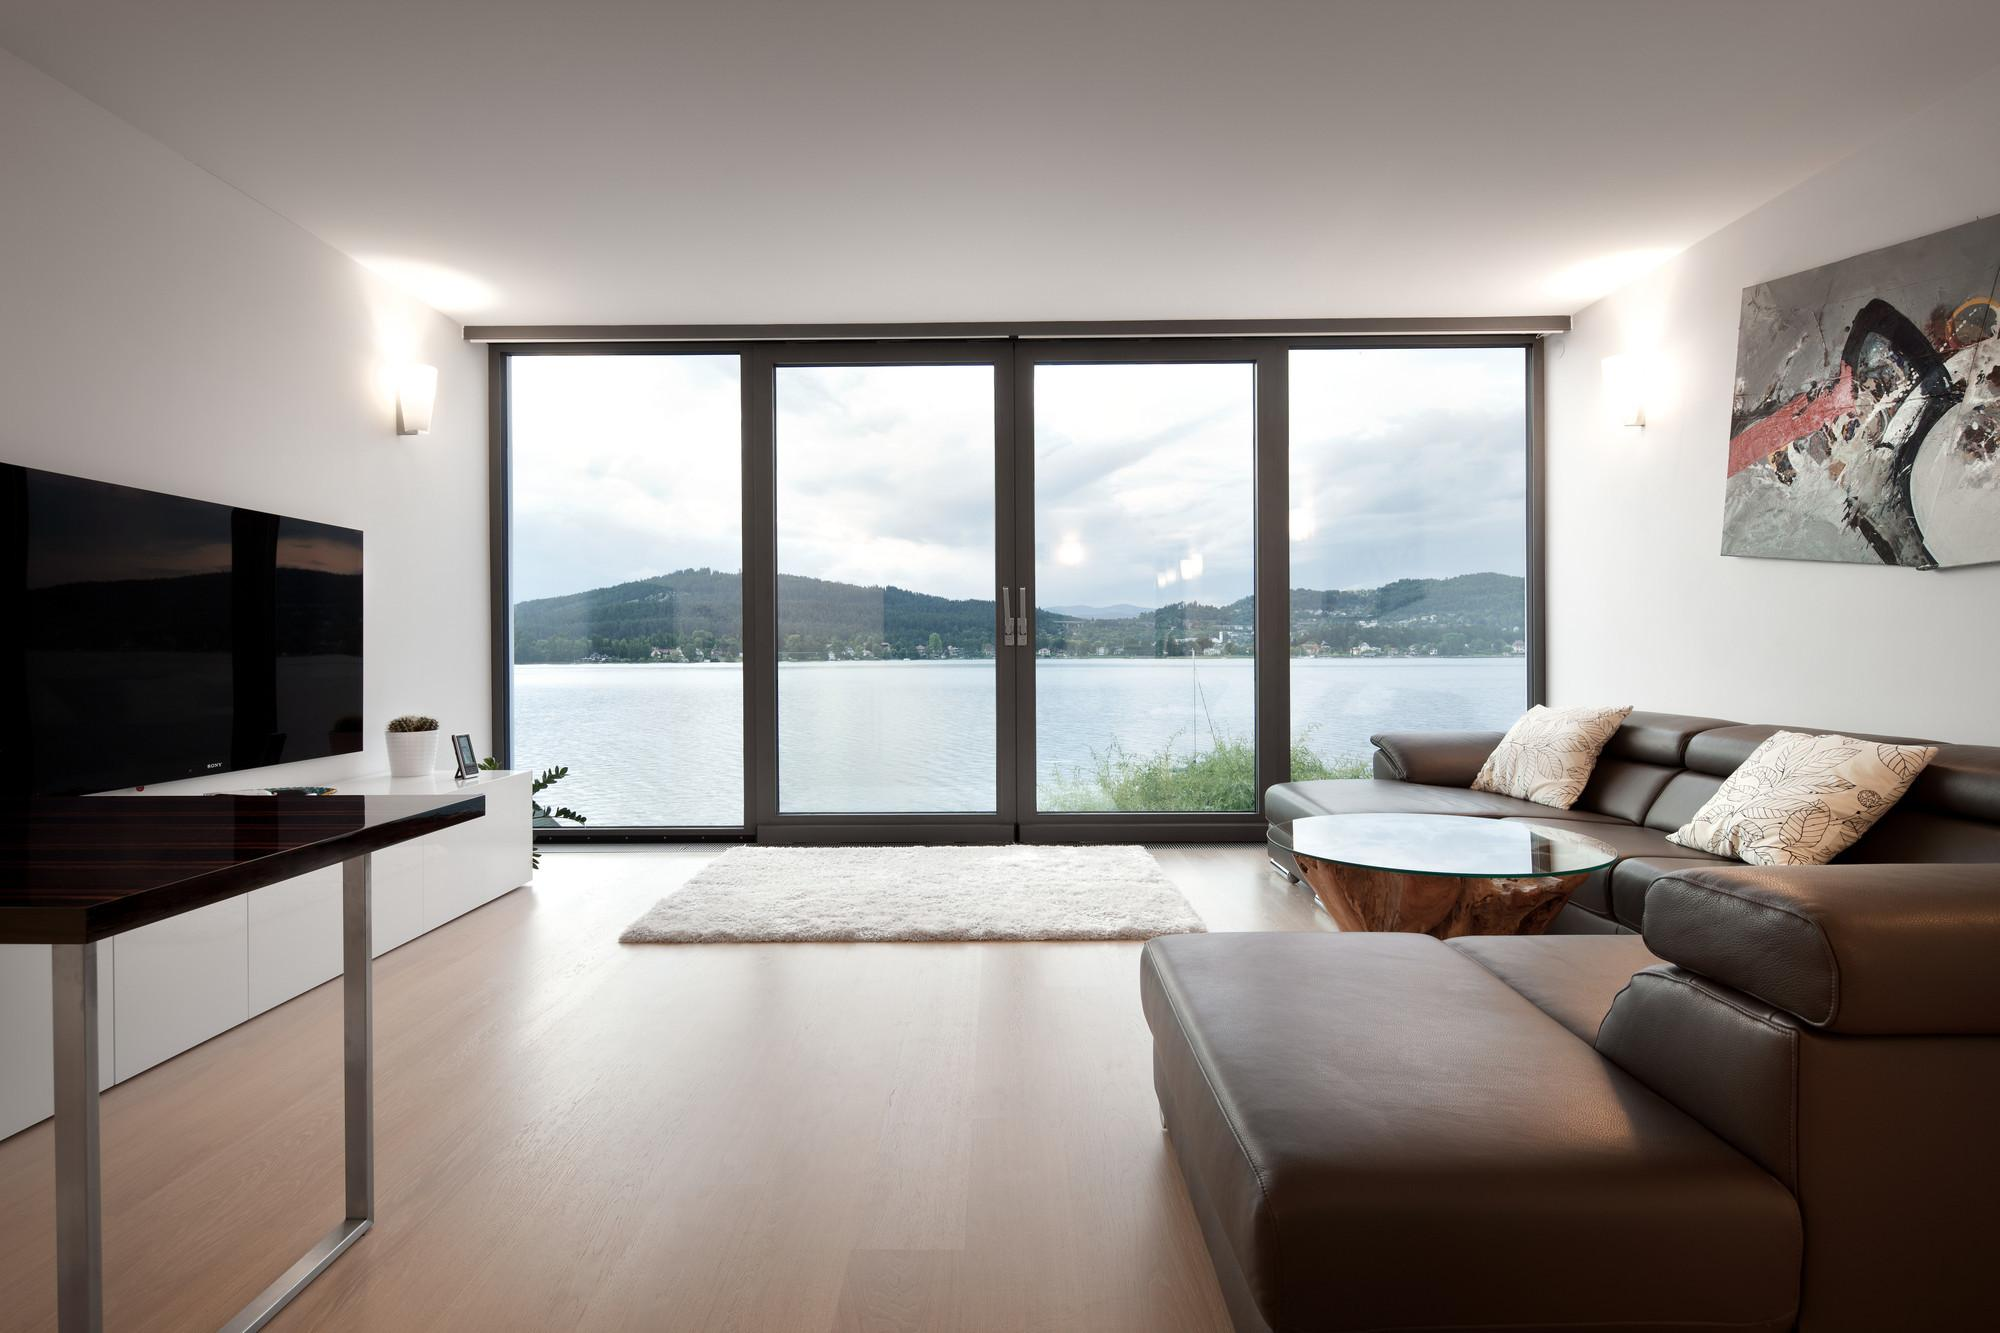 Haus See Spado Architects Glass Windows